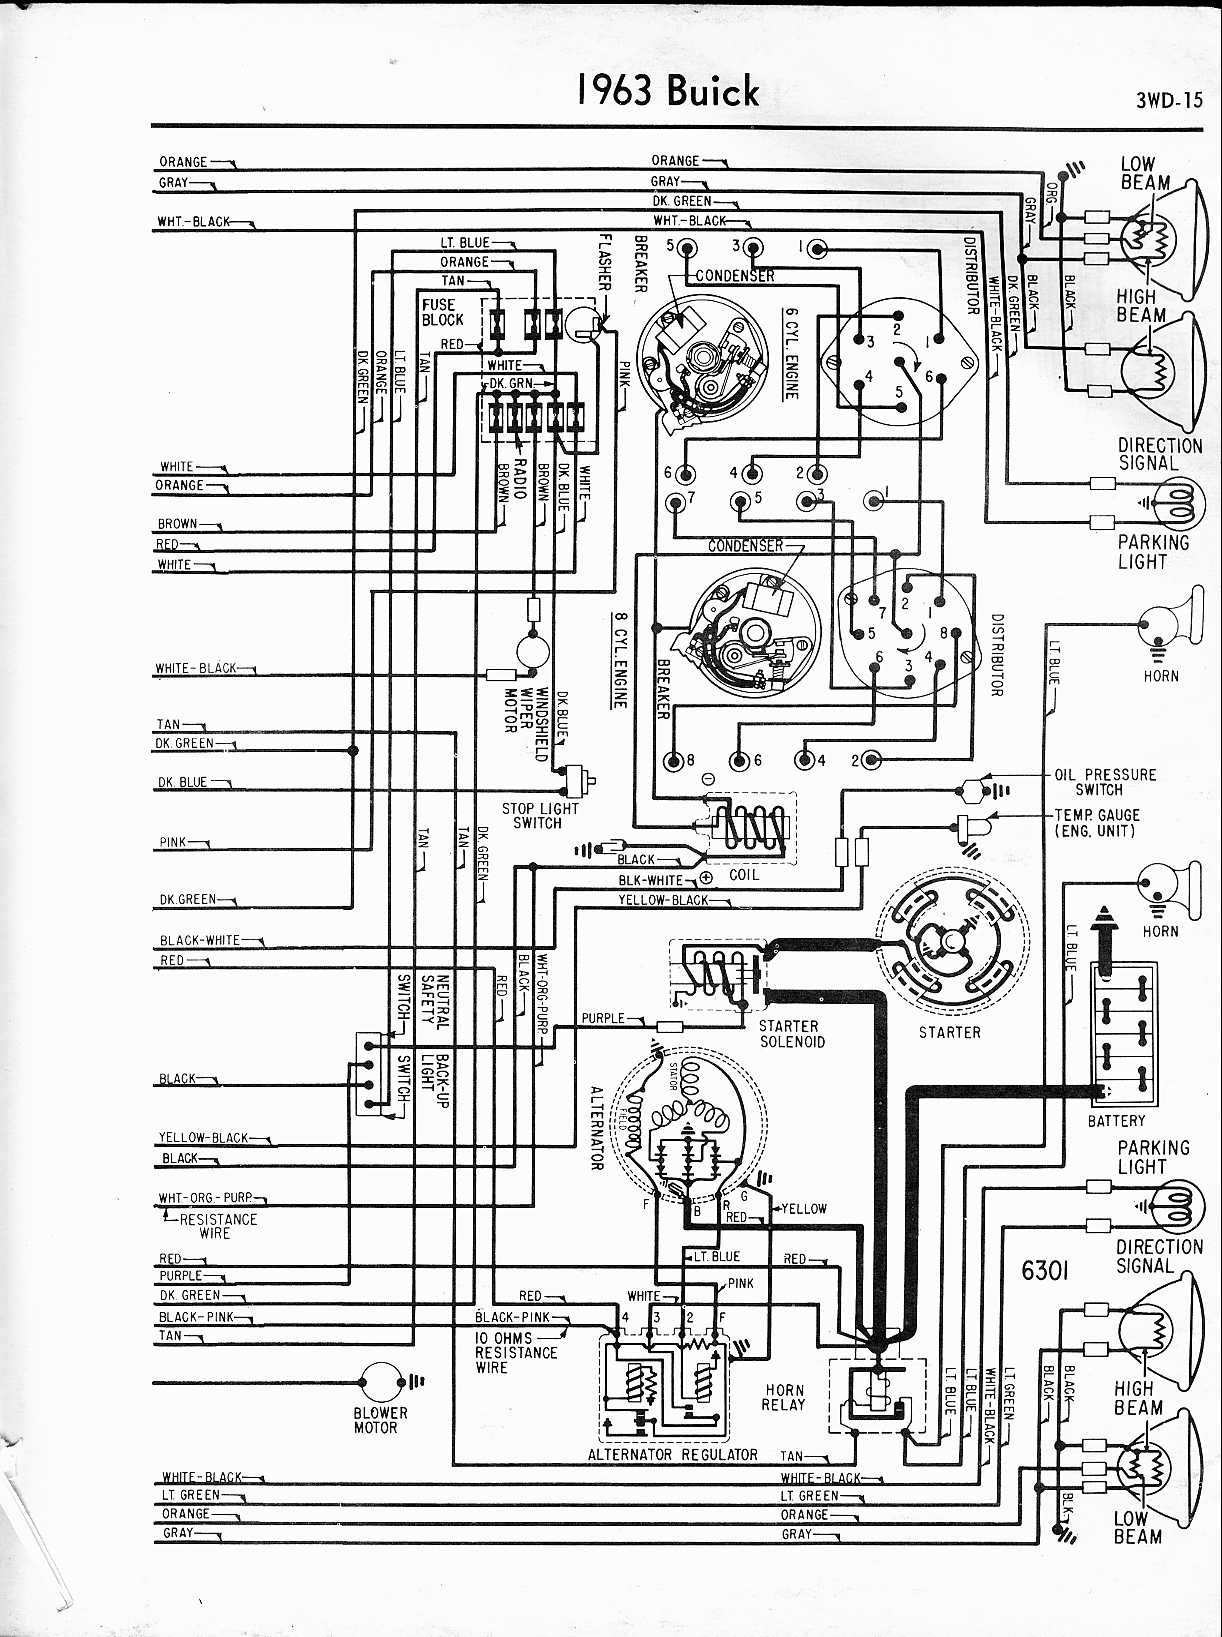 57 jeep wiring diagram wiring diagram rh 61 yoga neuwied de